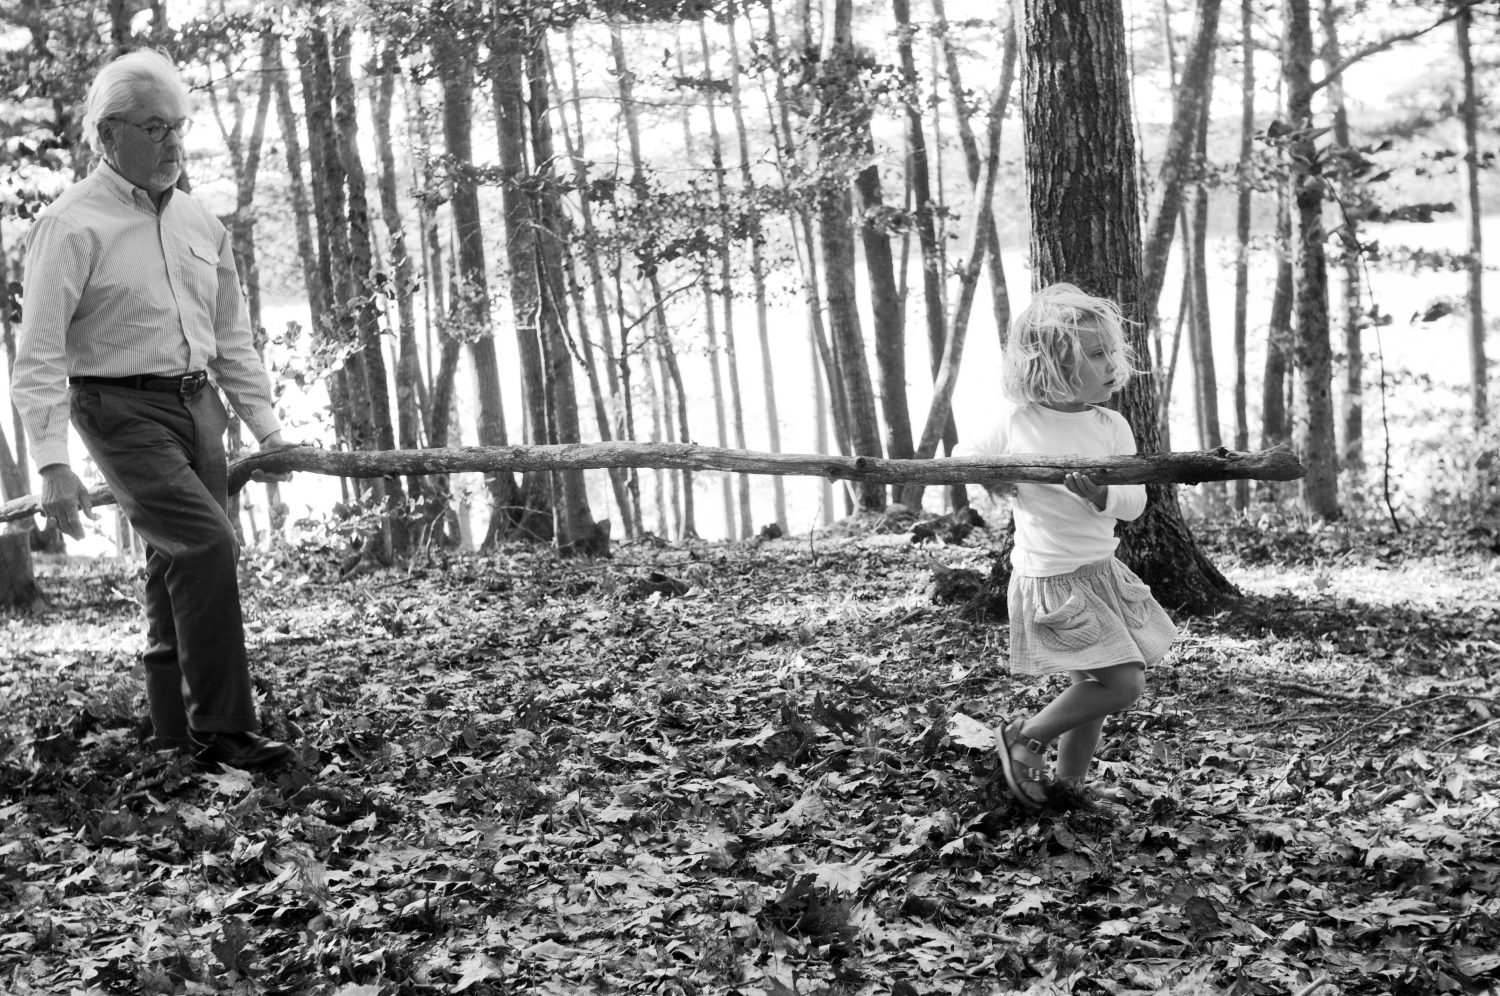 grandfather and granddaughter carrying a small log through the forest